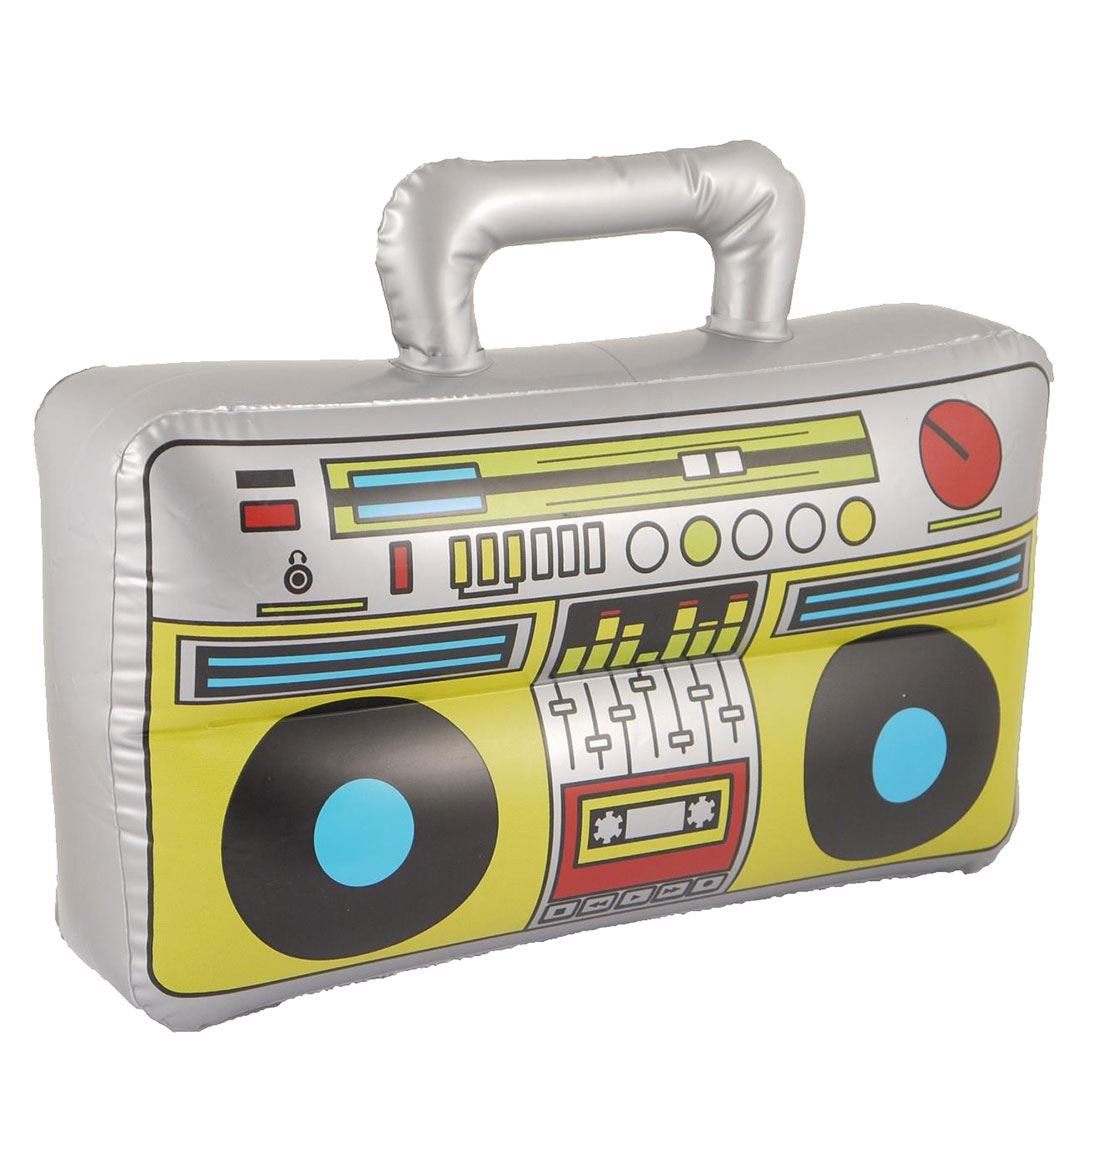 Islander Fashions Inflatable Boom Box 37X28cm Party Fancy Stag Do Blow Up Music Player Accessory One Size Pack of 1